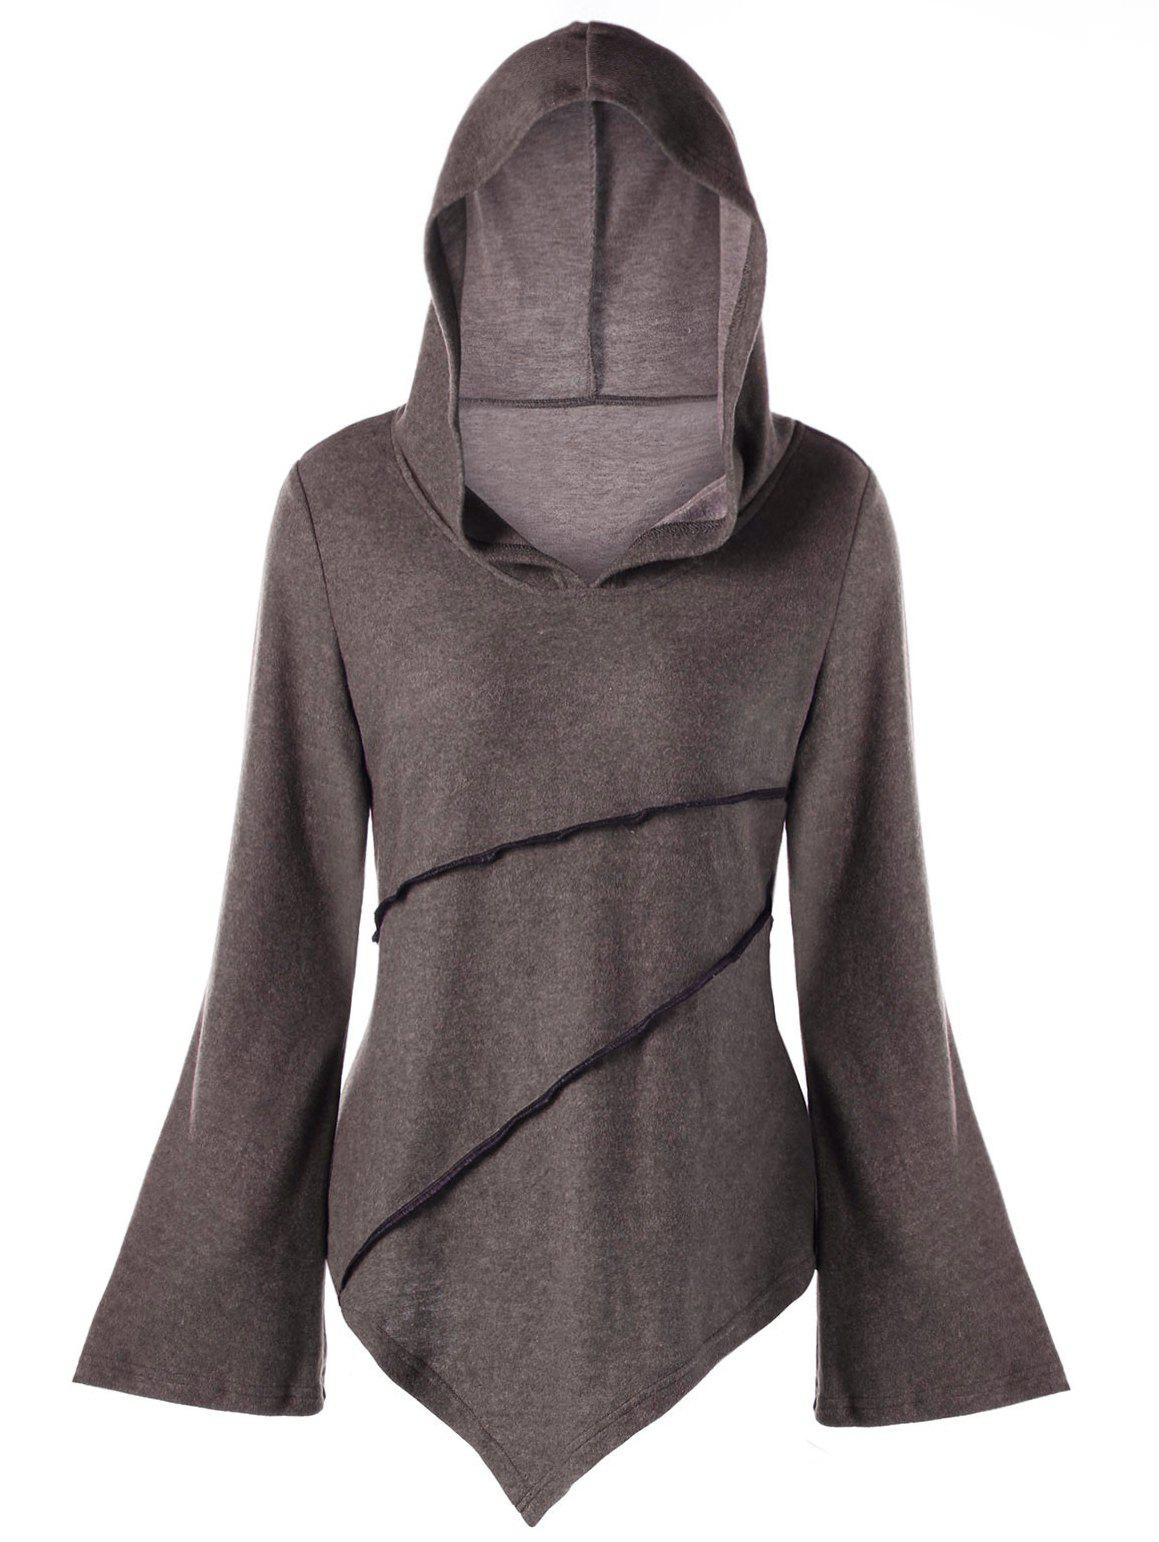 Flare Sleeve Exposed Seam Asymmetric HoodieWOMEN<br><br>Size: M; Color: COFFEE; Material: Cotton Blend,Polyester; Shirt Length: Long; Sleeve Length: Full; Style: Fashion; Pattern Style: Solid; Season: Fall,Spring; Weight: 0.3580kg; Package Contents: 1 x Hoodie;